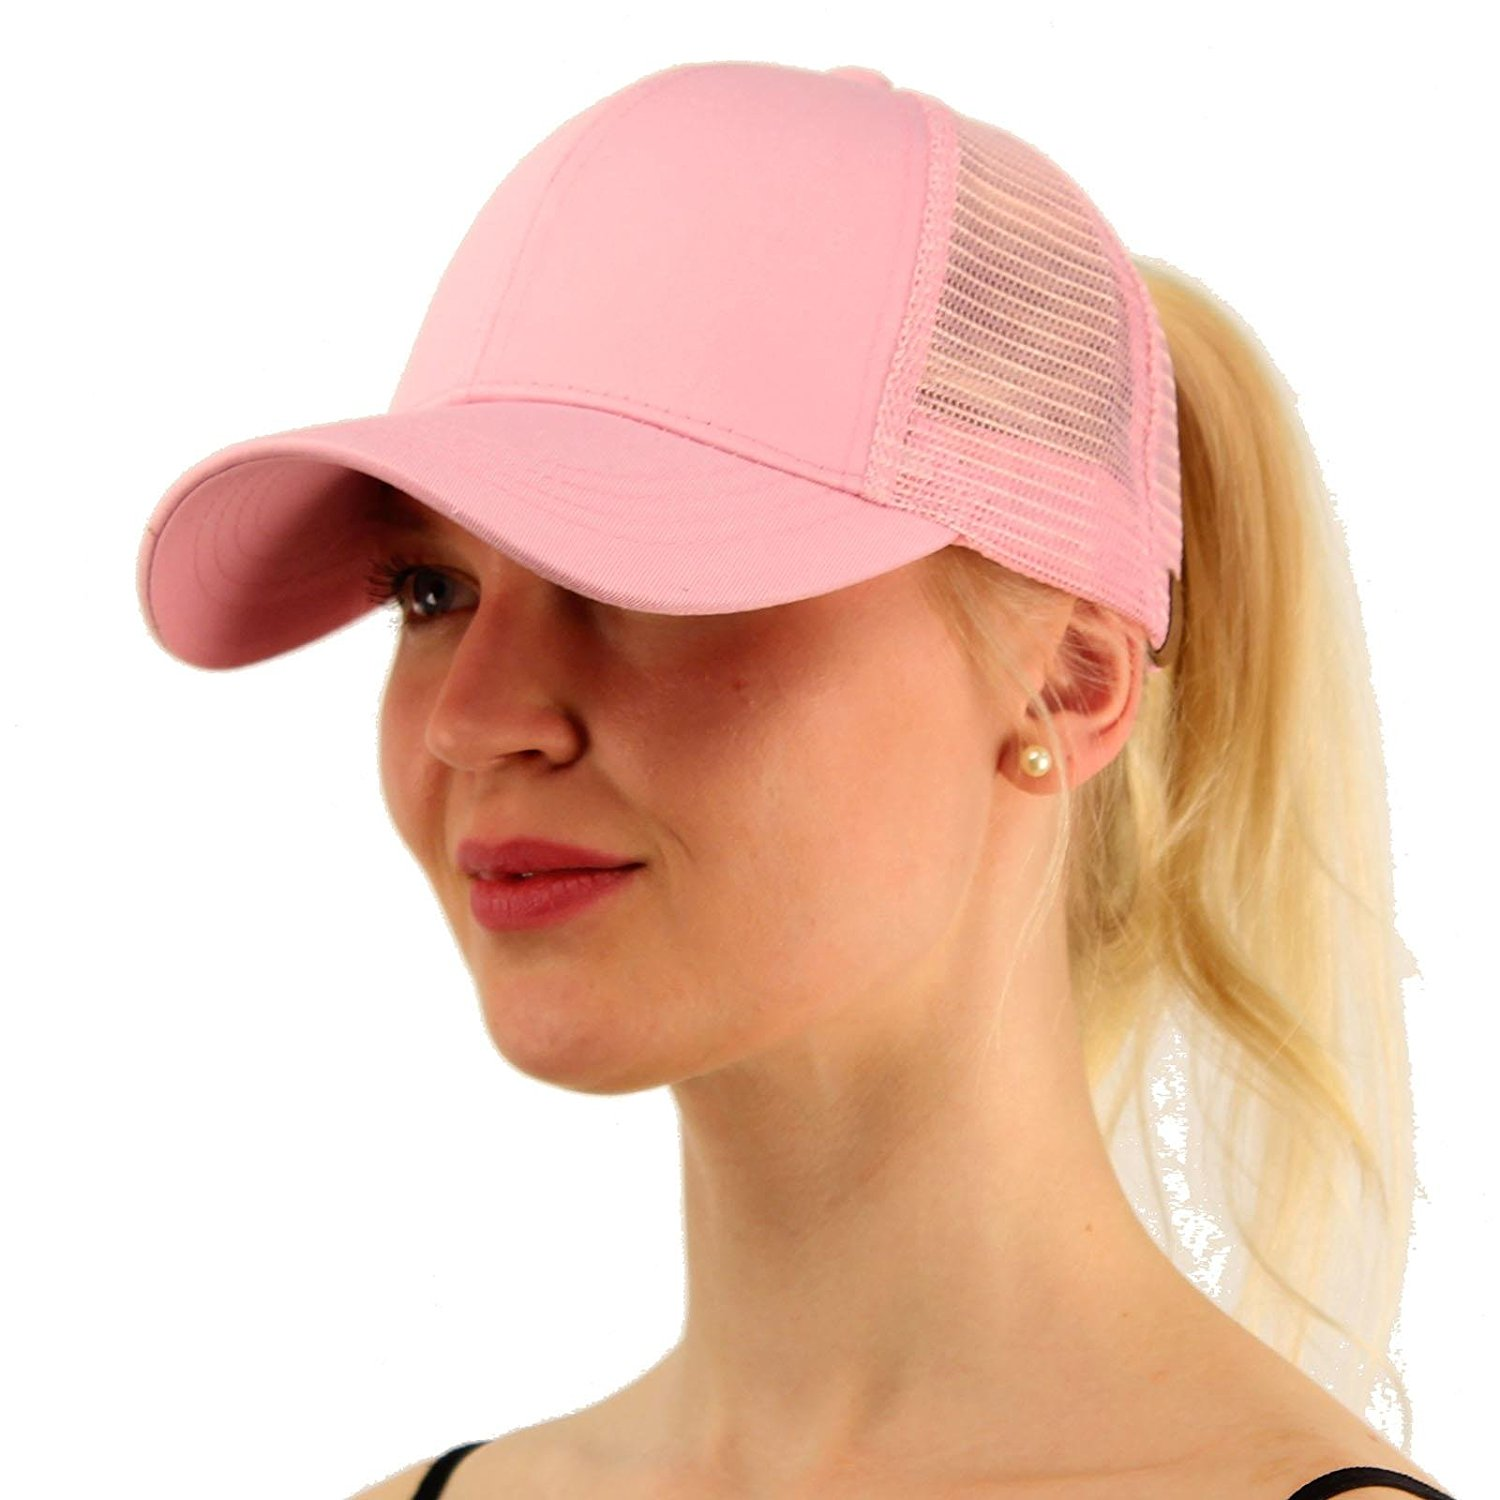 62255431c 2018 Ponytail Baseball Cap Women Messy Bun Hat Snapback